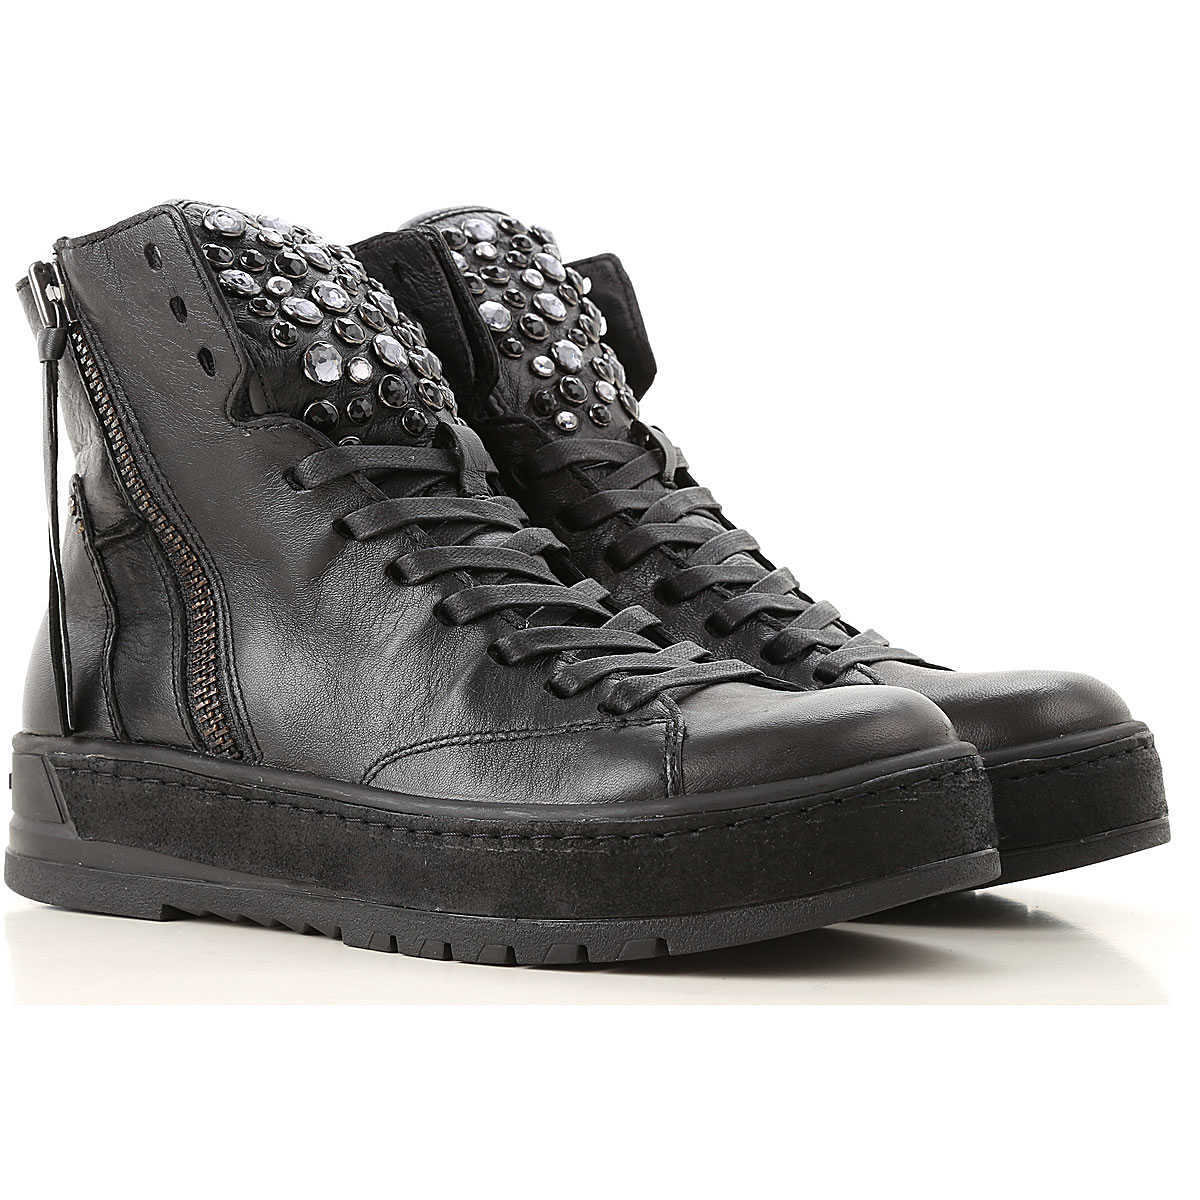 Crime Boots for Women Booties On Sale in Outlet - GOOFASH